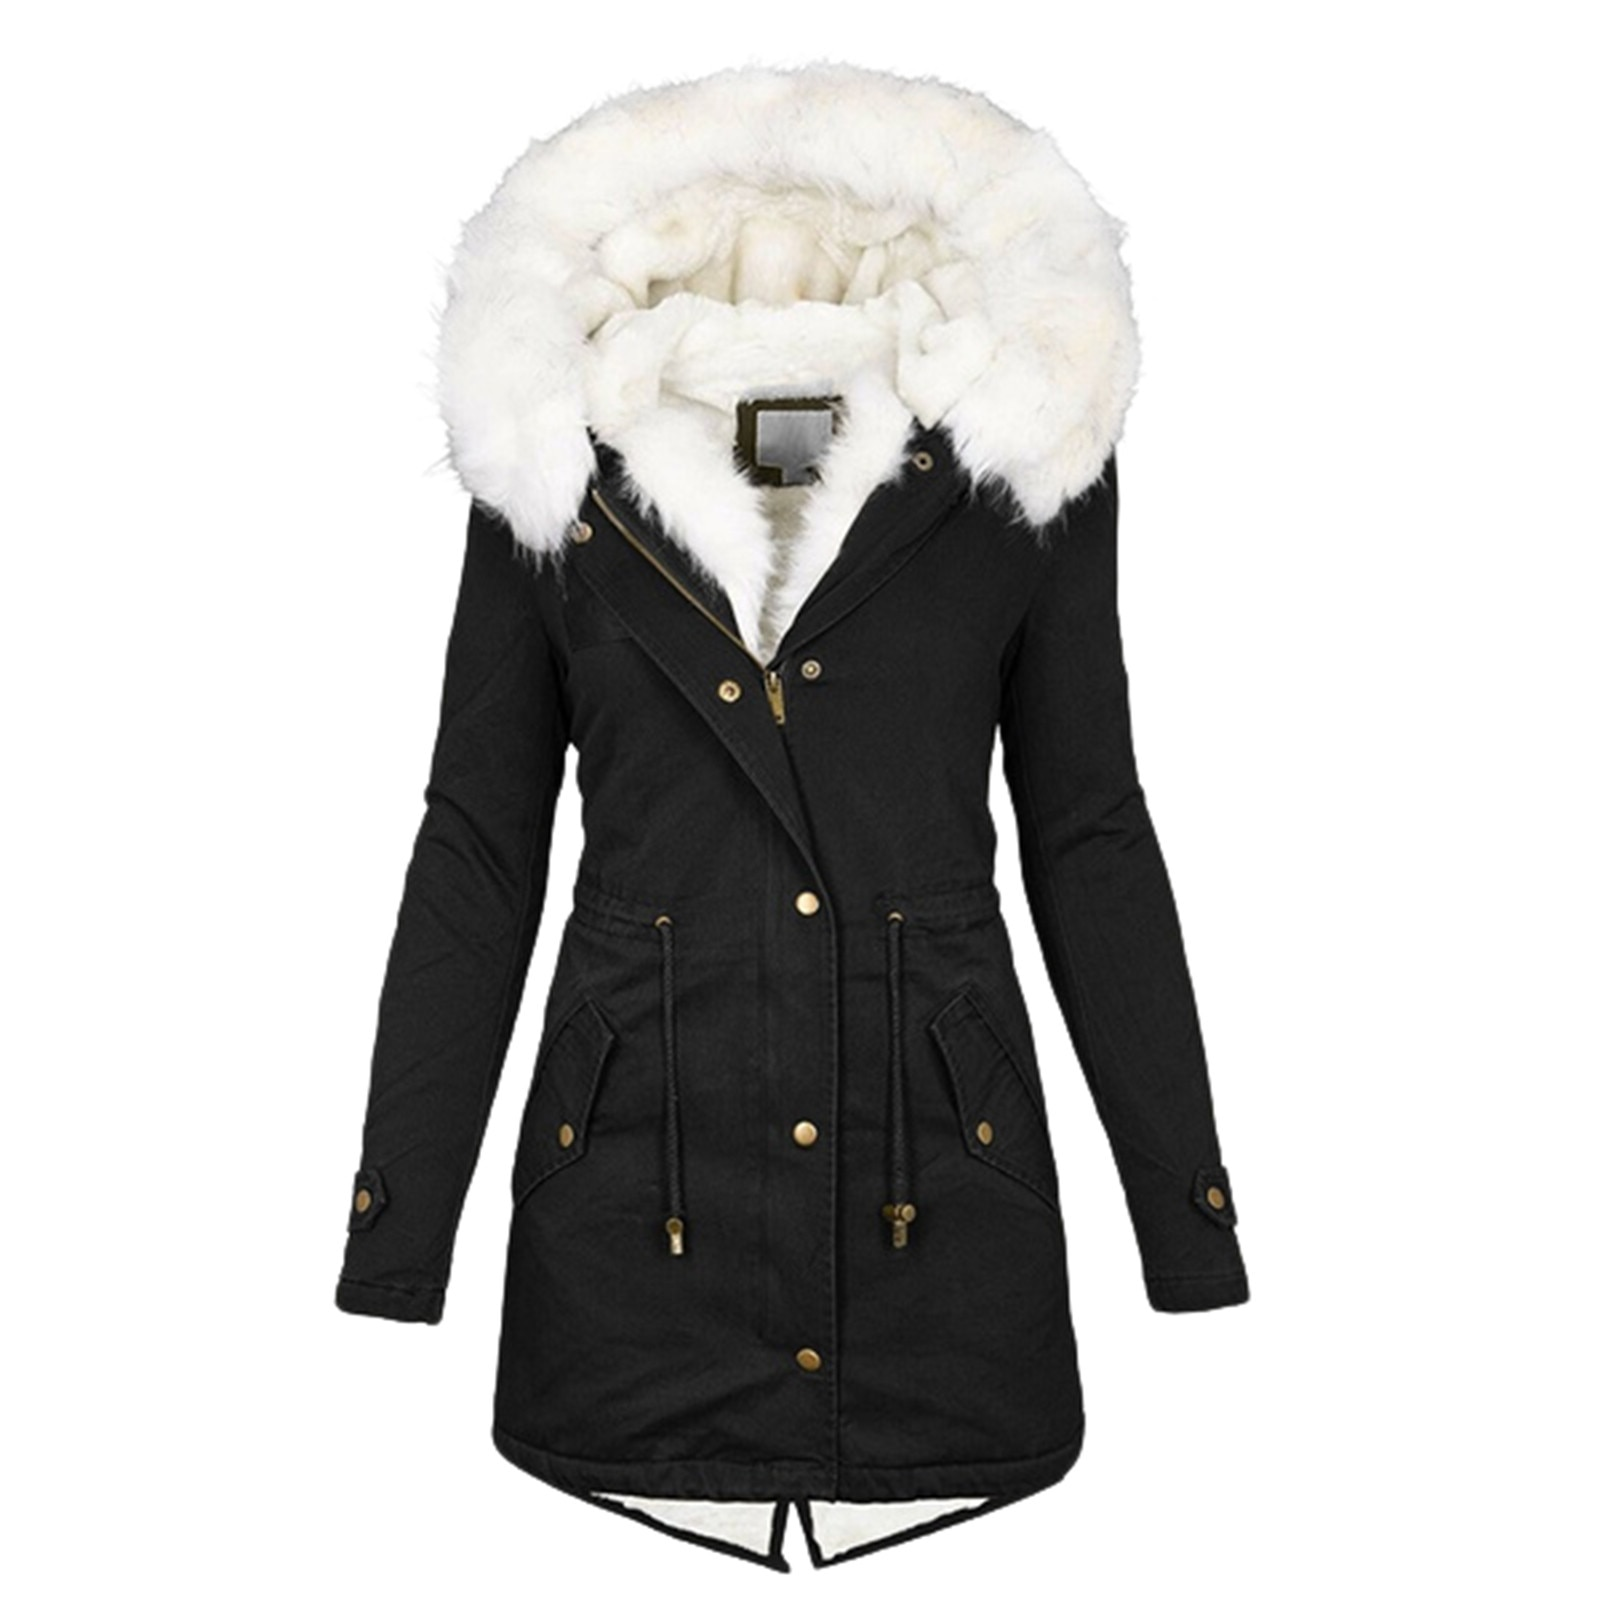 Winter Jacket Women Thick Warm Hooded Parka Mujer Cotton Padded Coat Long Paragraph Plus Size Slim Jacket Female 2020 #T2Q winter jacket women thick warm hooded fur parka cotton padded coat long outwear plus size 3xl slim jacket female